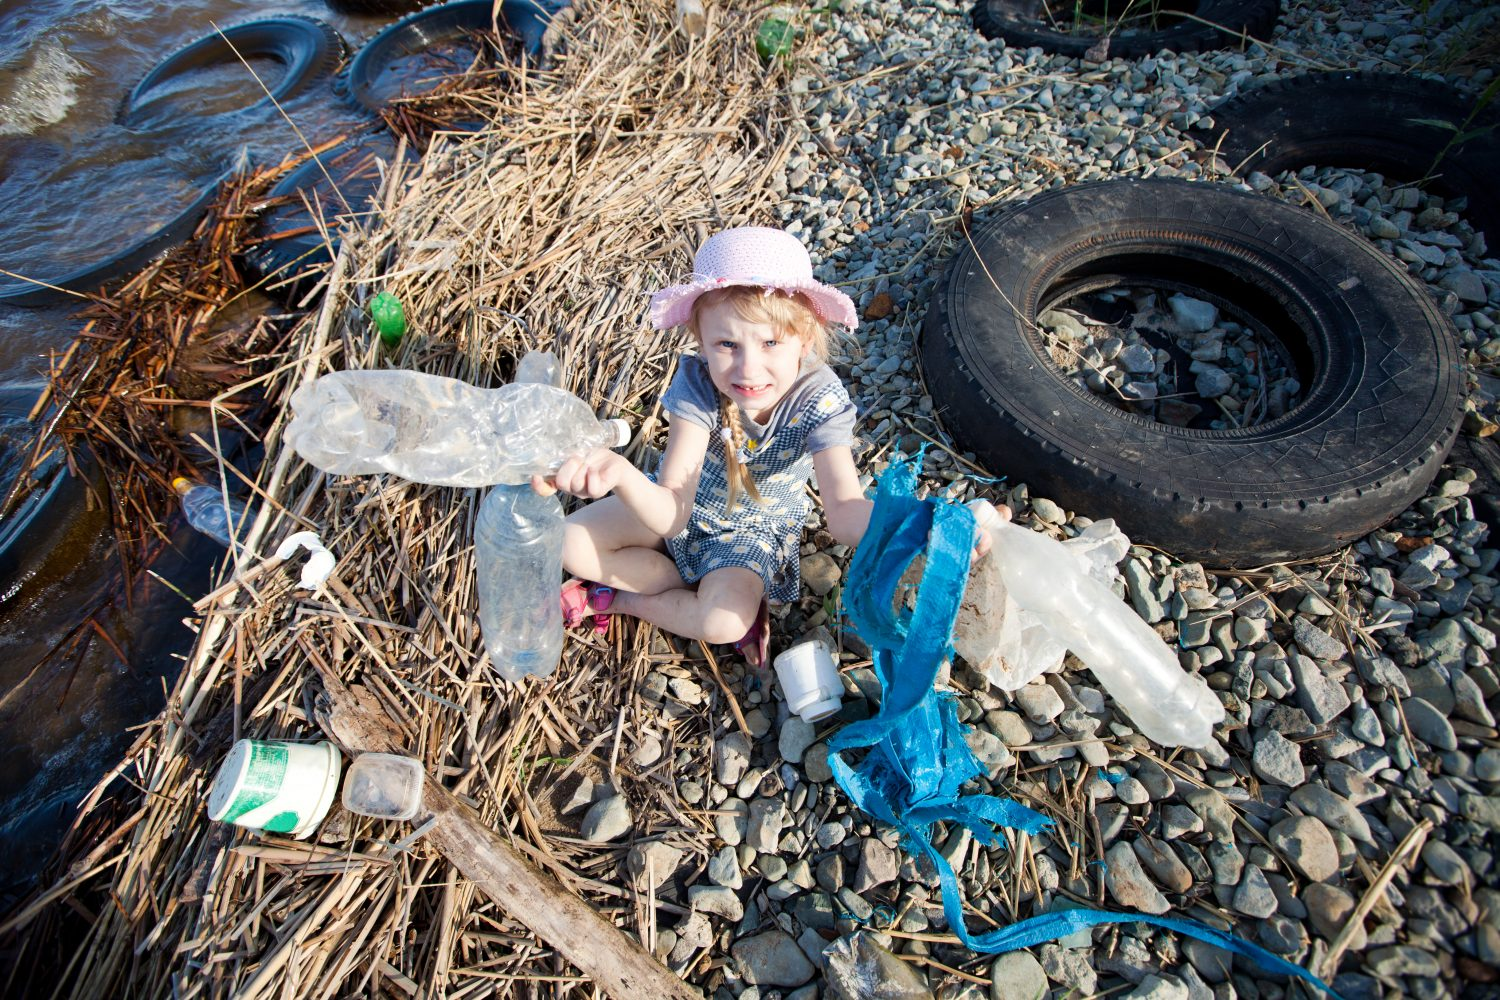 small girl collecting rubbish near the river